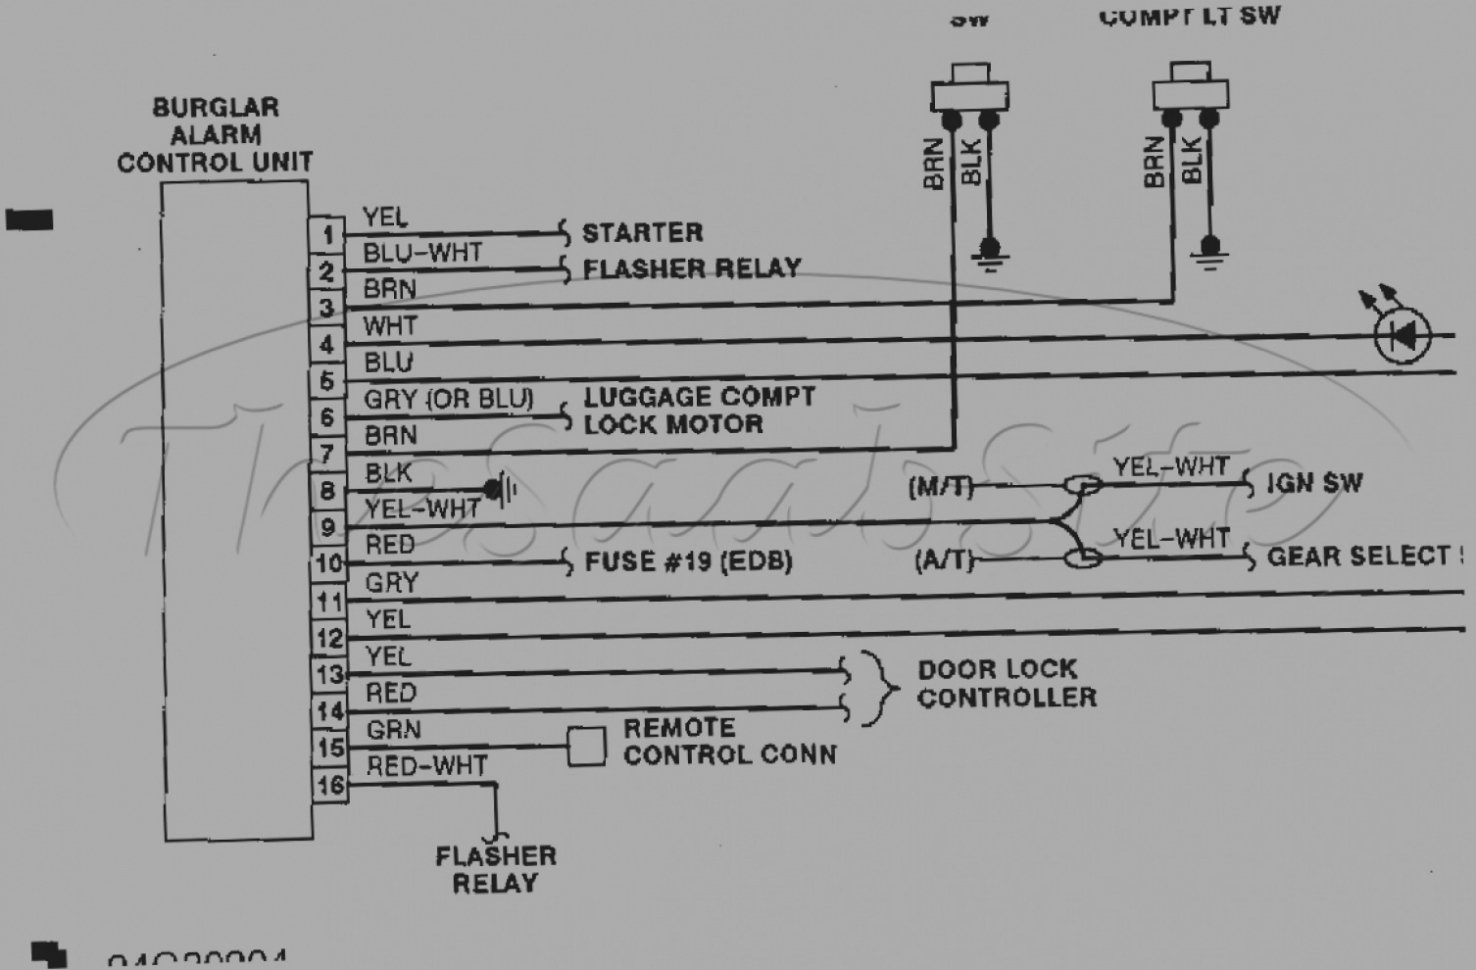 whelen siren 295slsa6 wiring diagram Download-Whelen Epsilon Wiring Diagram New Whelen Alpha Siren Wiring Diagram Tamahuproject Wiring Diagrams 14-i